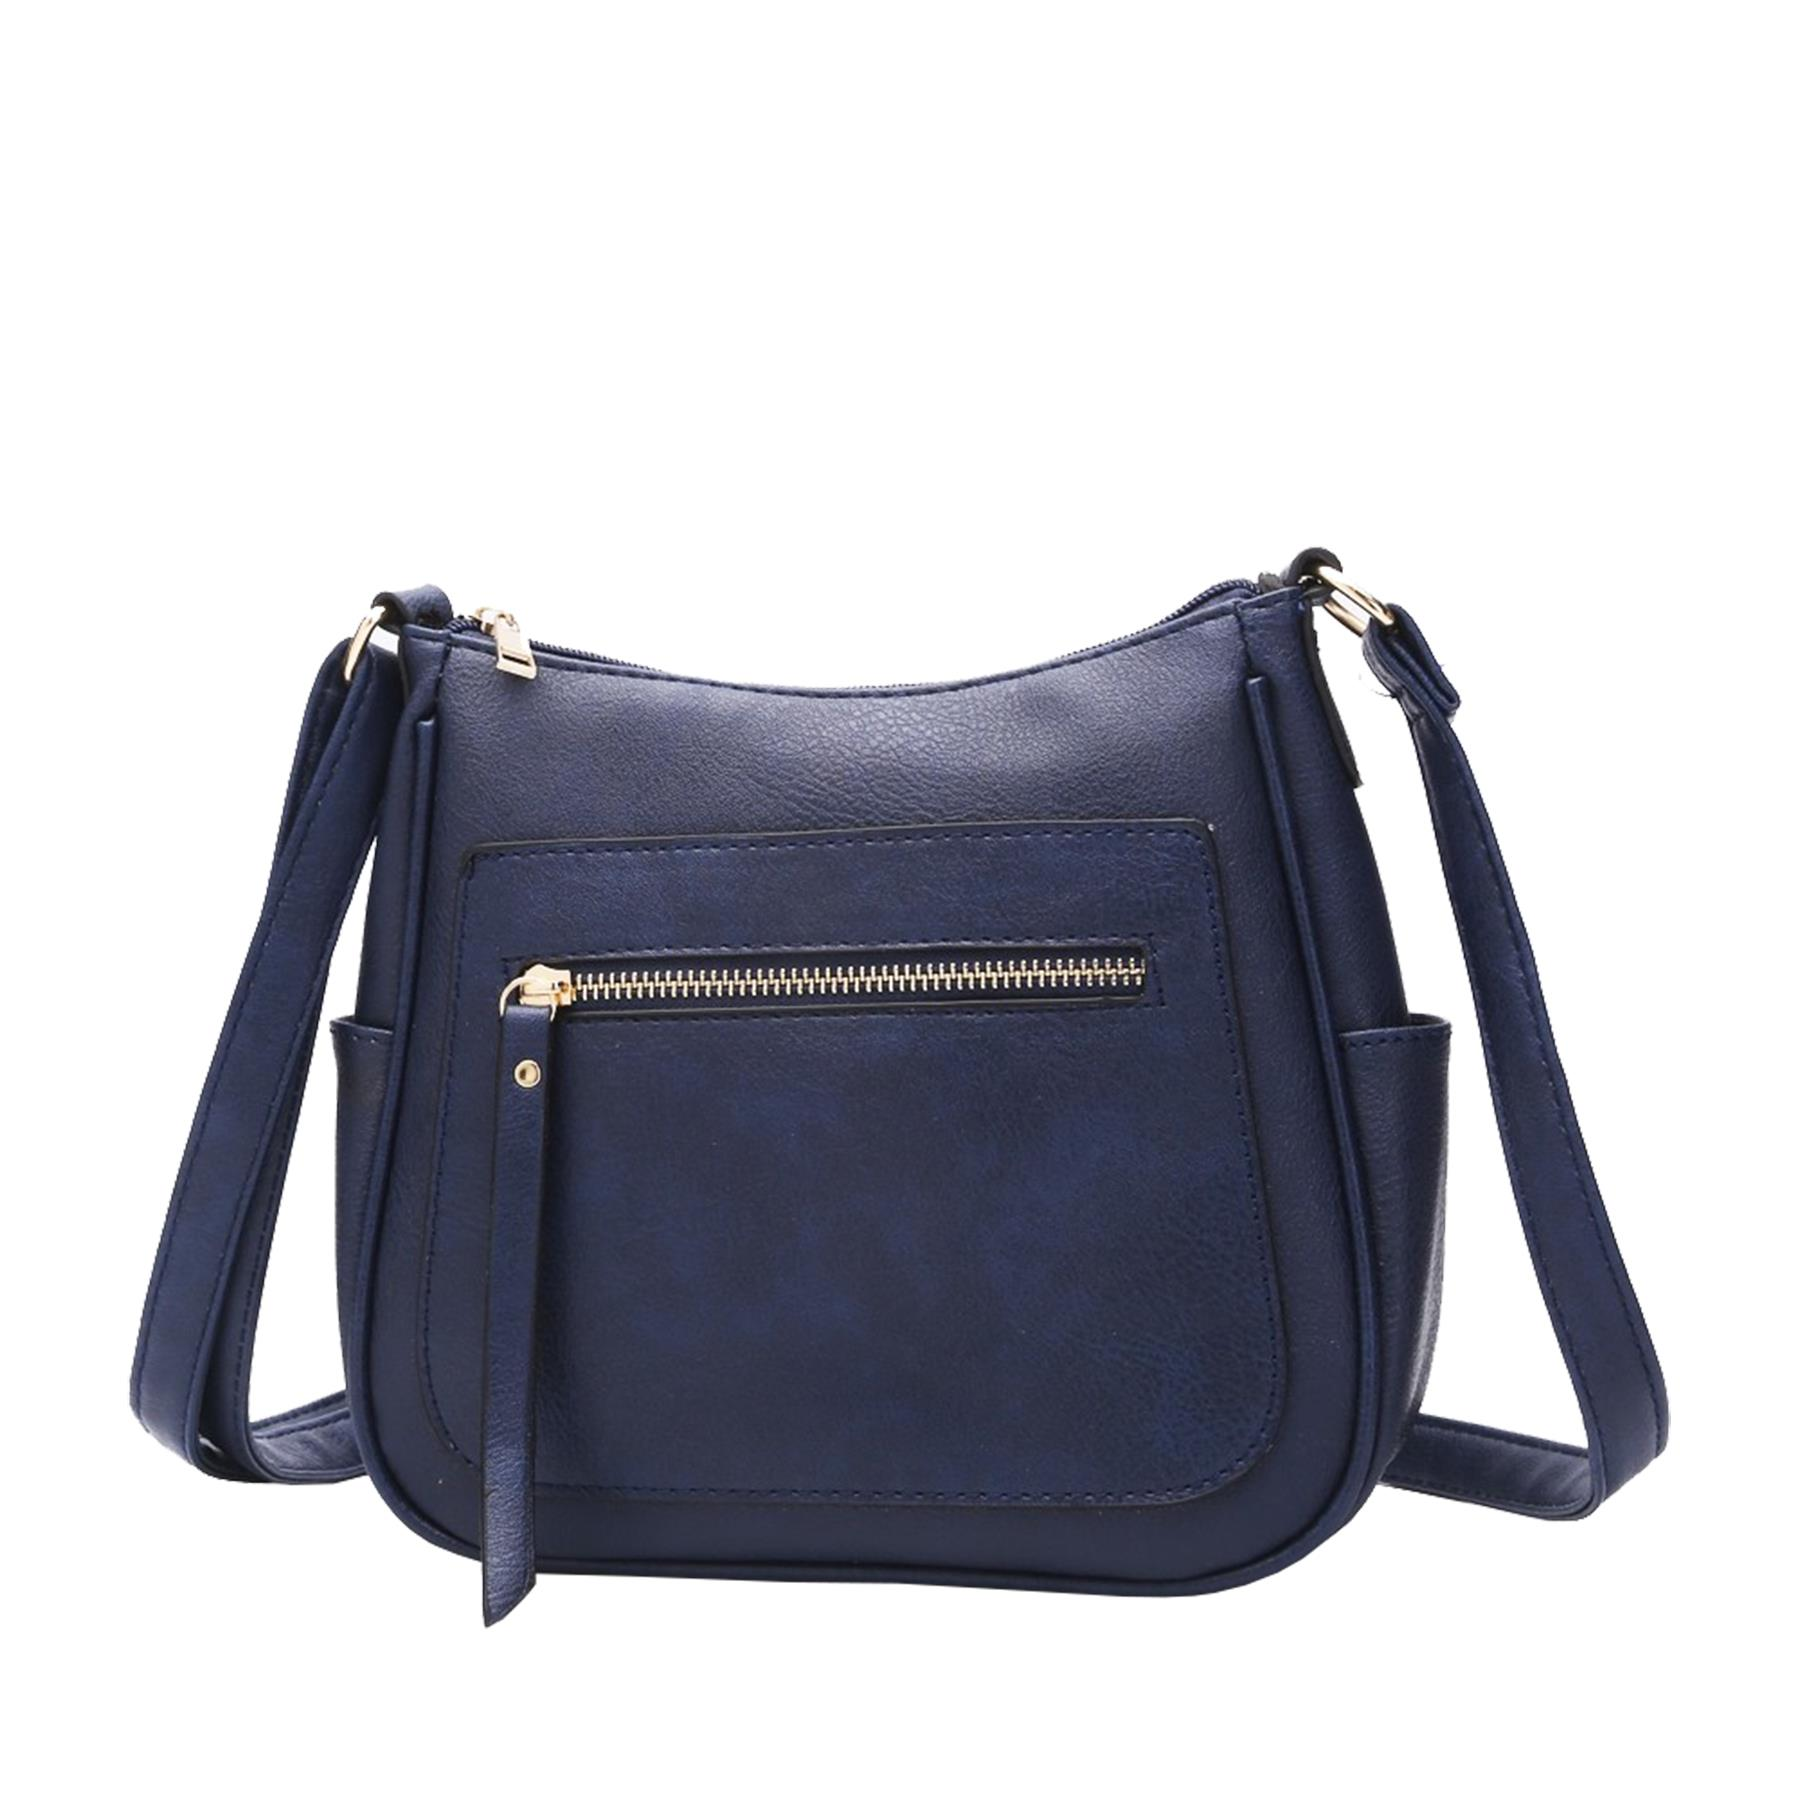 New-Women-s-Front-Zip-Faux-Leather-Basic-Small-Crossbody-Messenger-Bag thumbnail 12